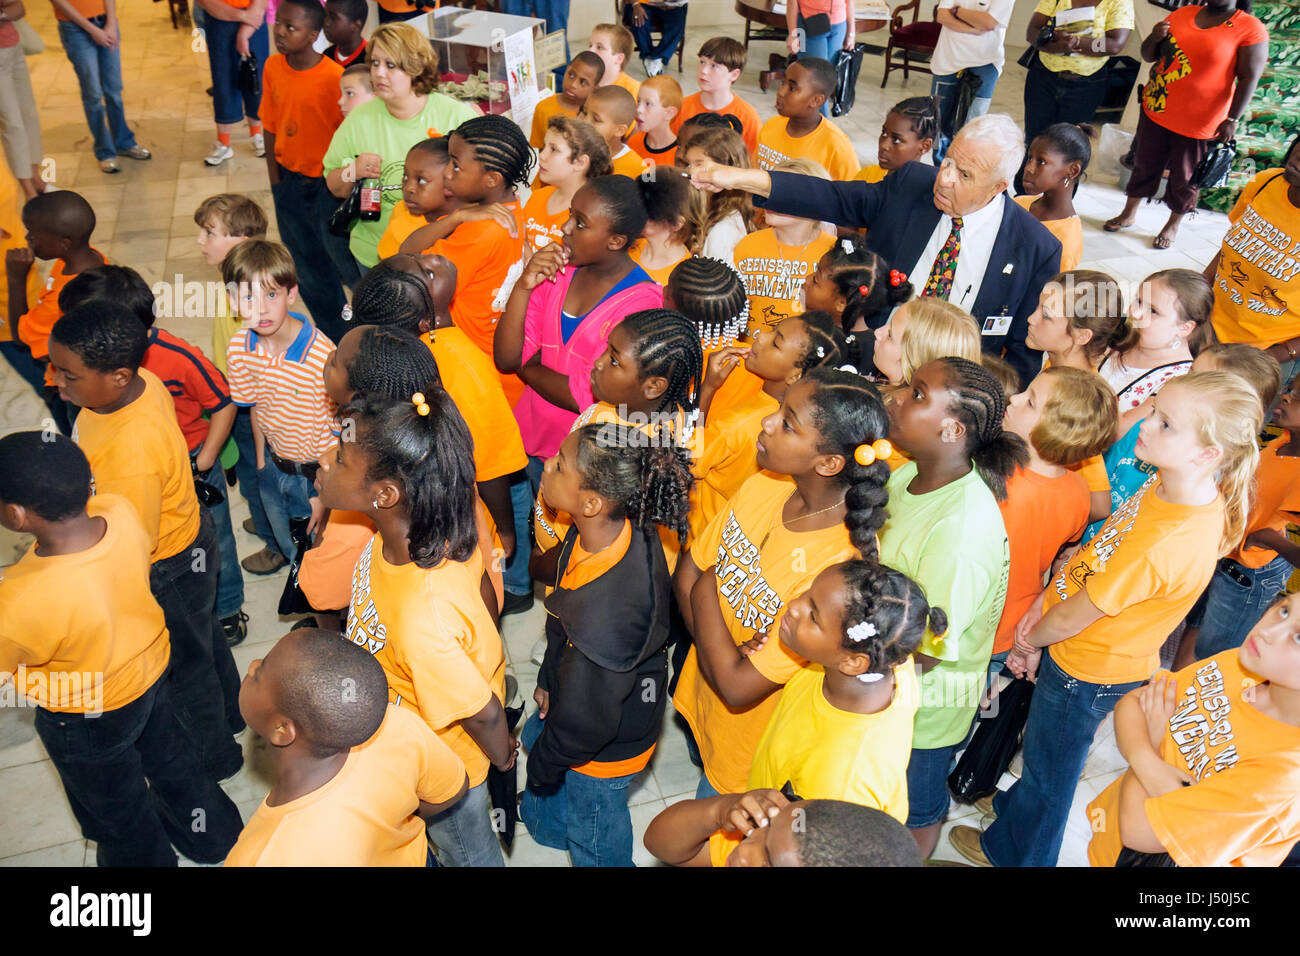 https://c8.alamy.com/compfr/j50j5c/montgomery-alabama-state-capitol-building-black-girl-classe-etudiant-voyage-tour-guide-senior-man-gouvernement-interieur-premier-co-j50j5c.jpg